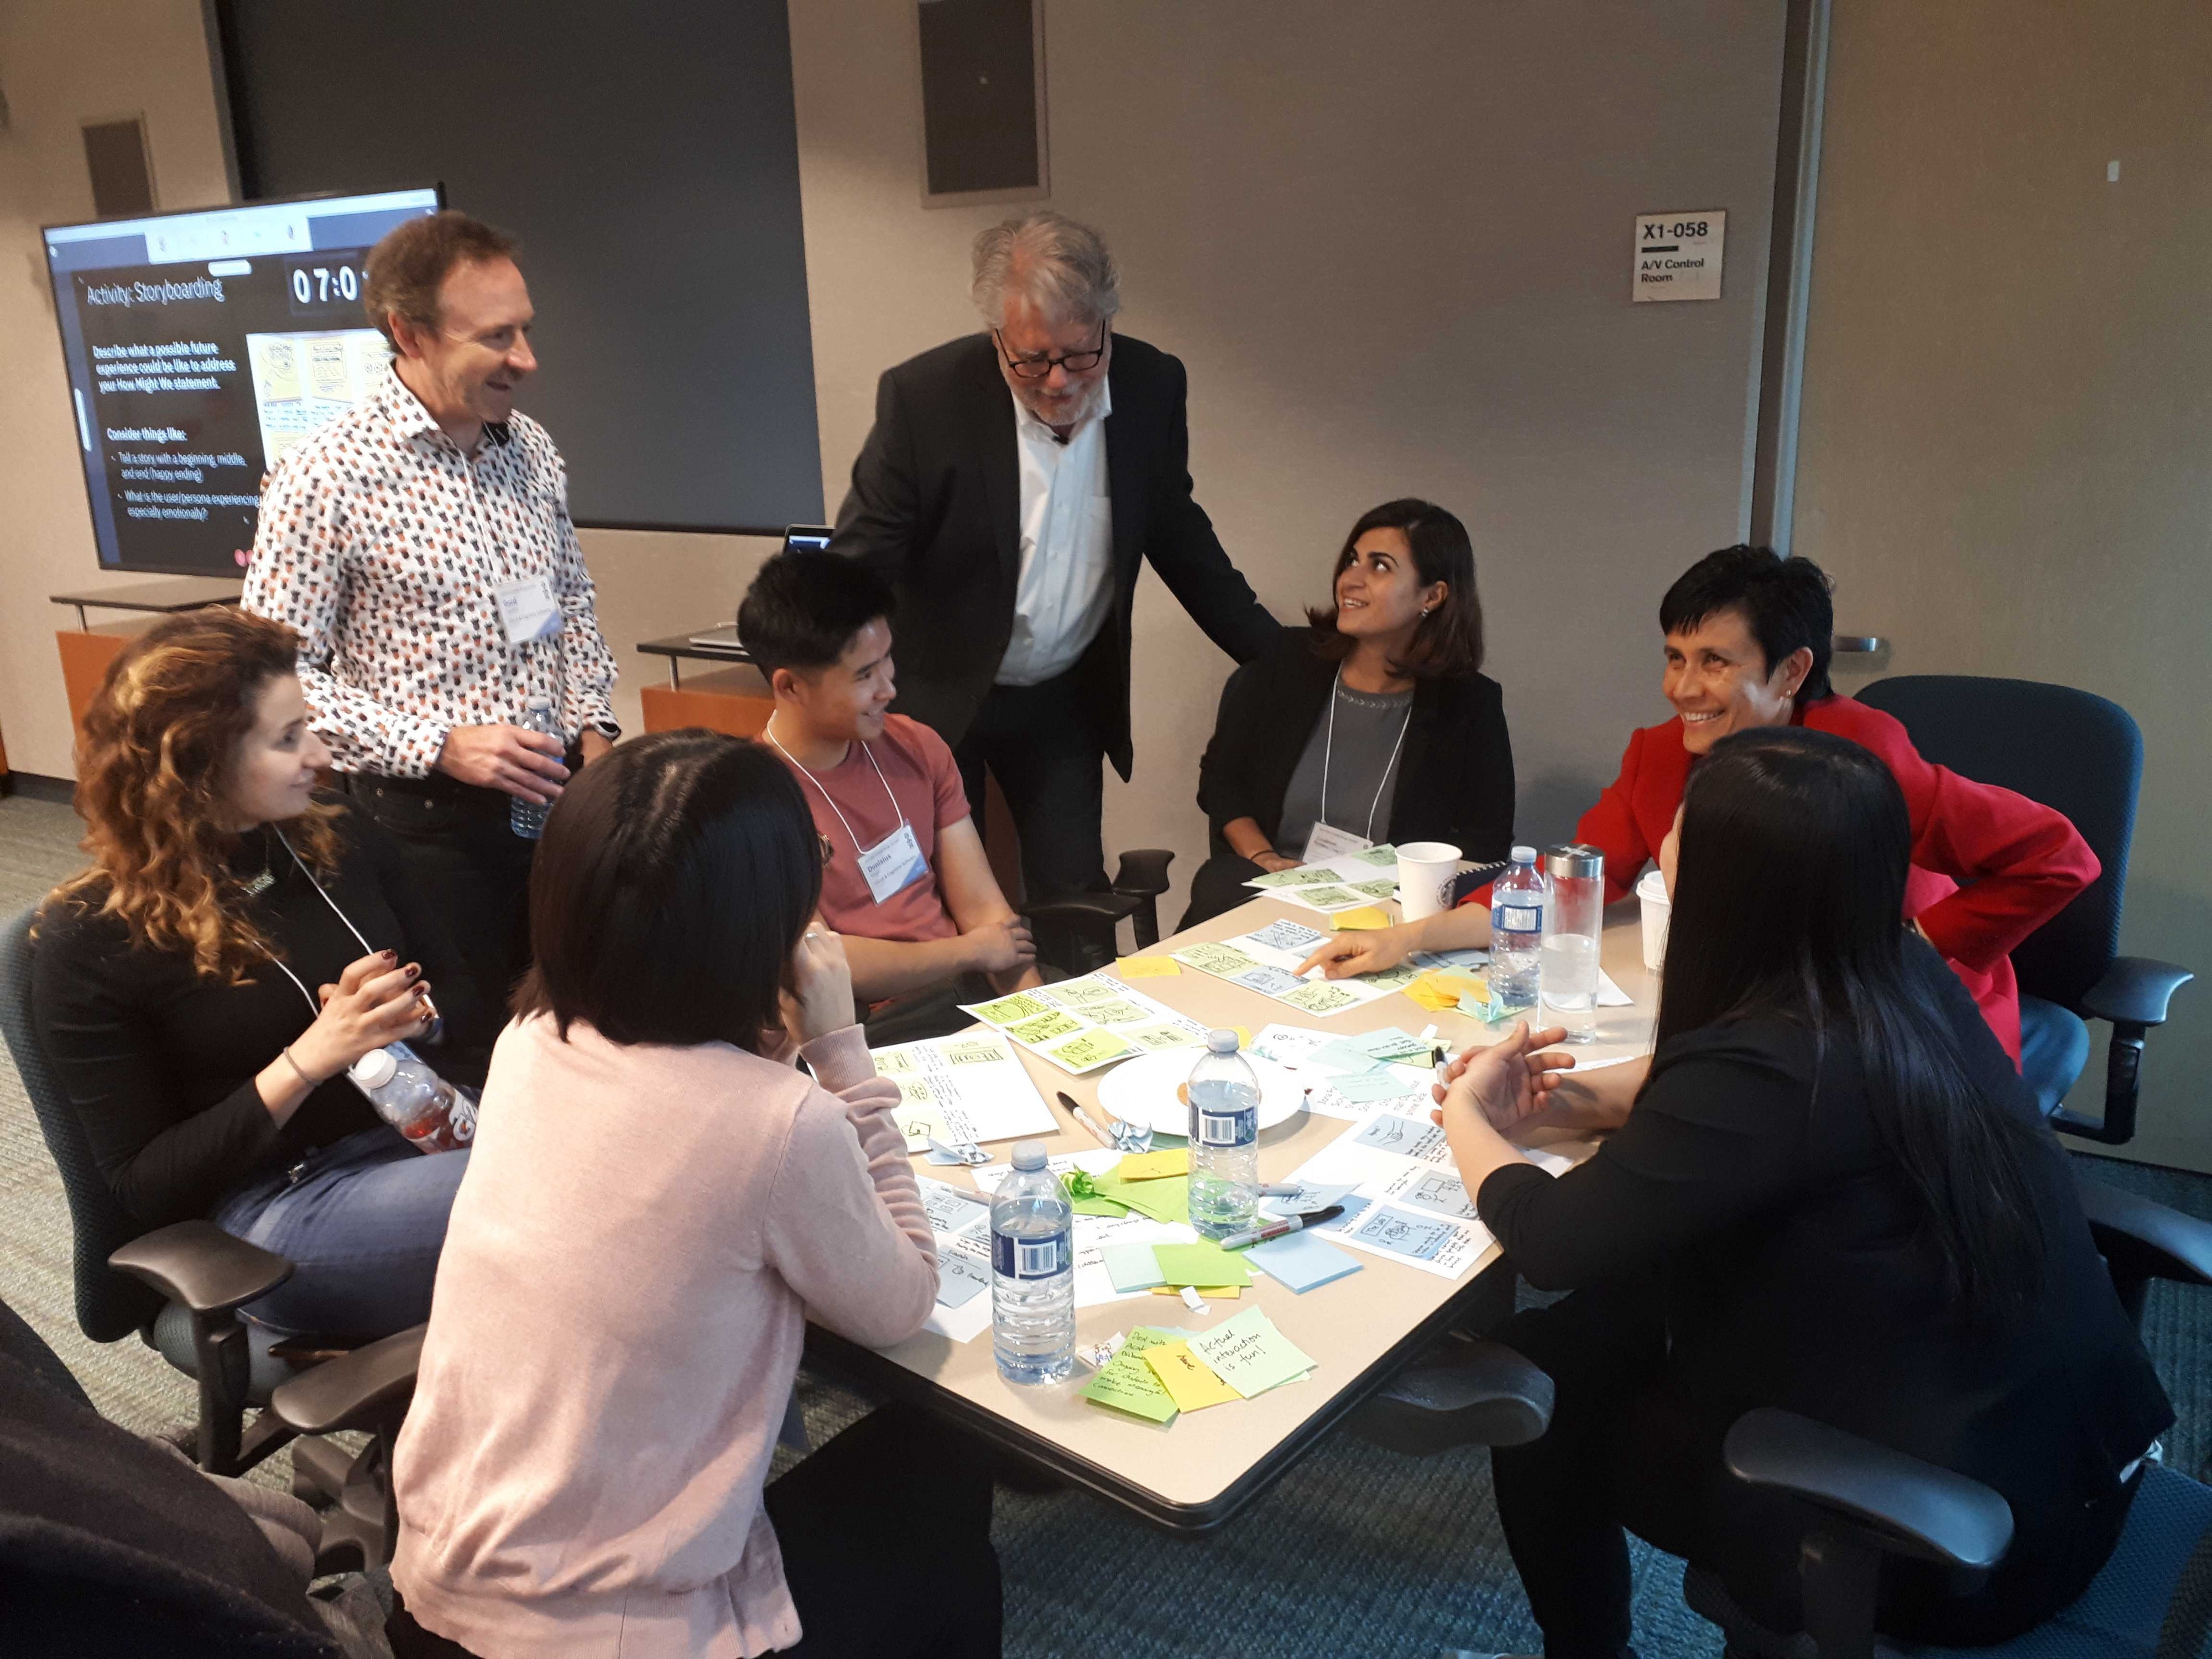 This is an image of my team sharing our idea with the hosts of the conference, Karel Vredenburg and Gord Davison.